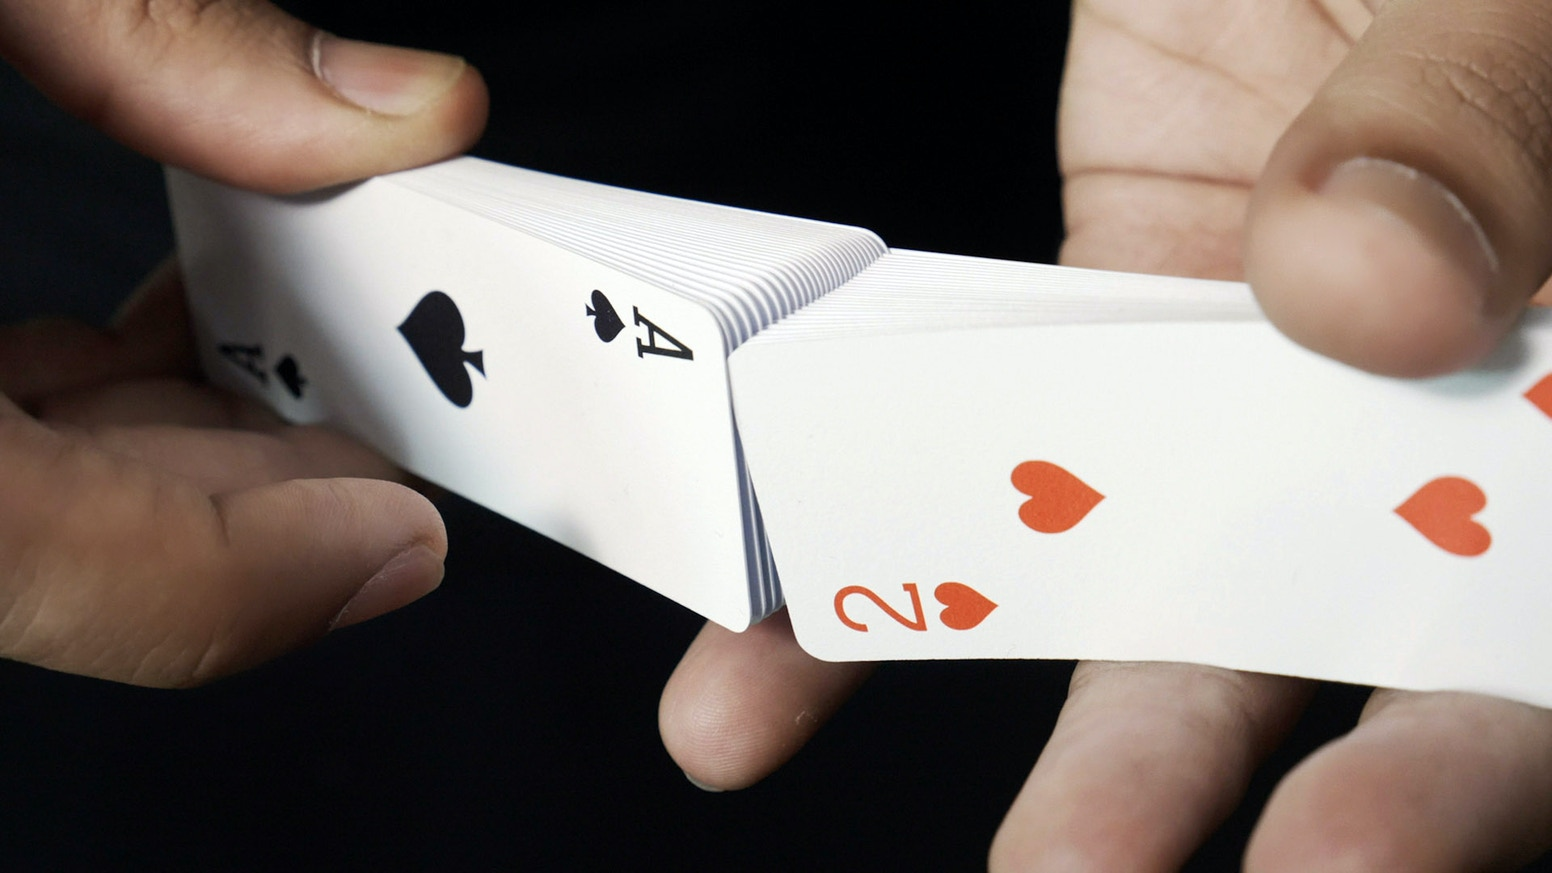 The super travel-optimized playing cards are back. Premium, waterproof, compact, lightweight, and durable. From US$10.